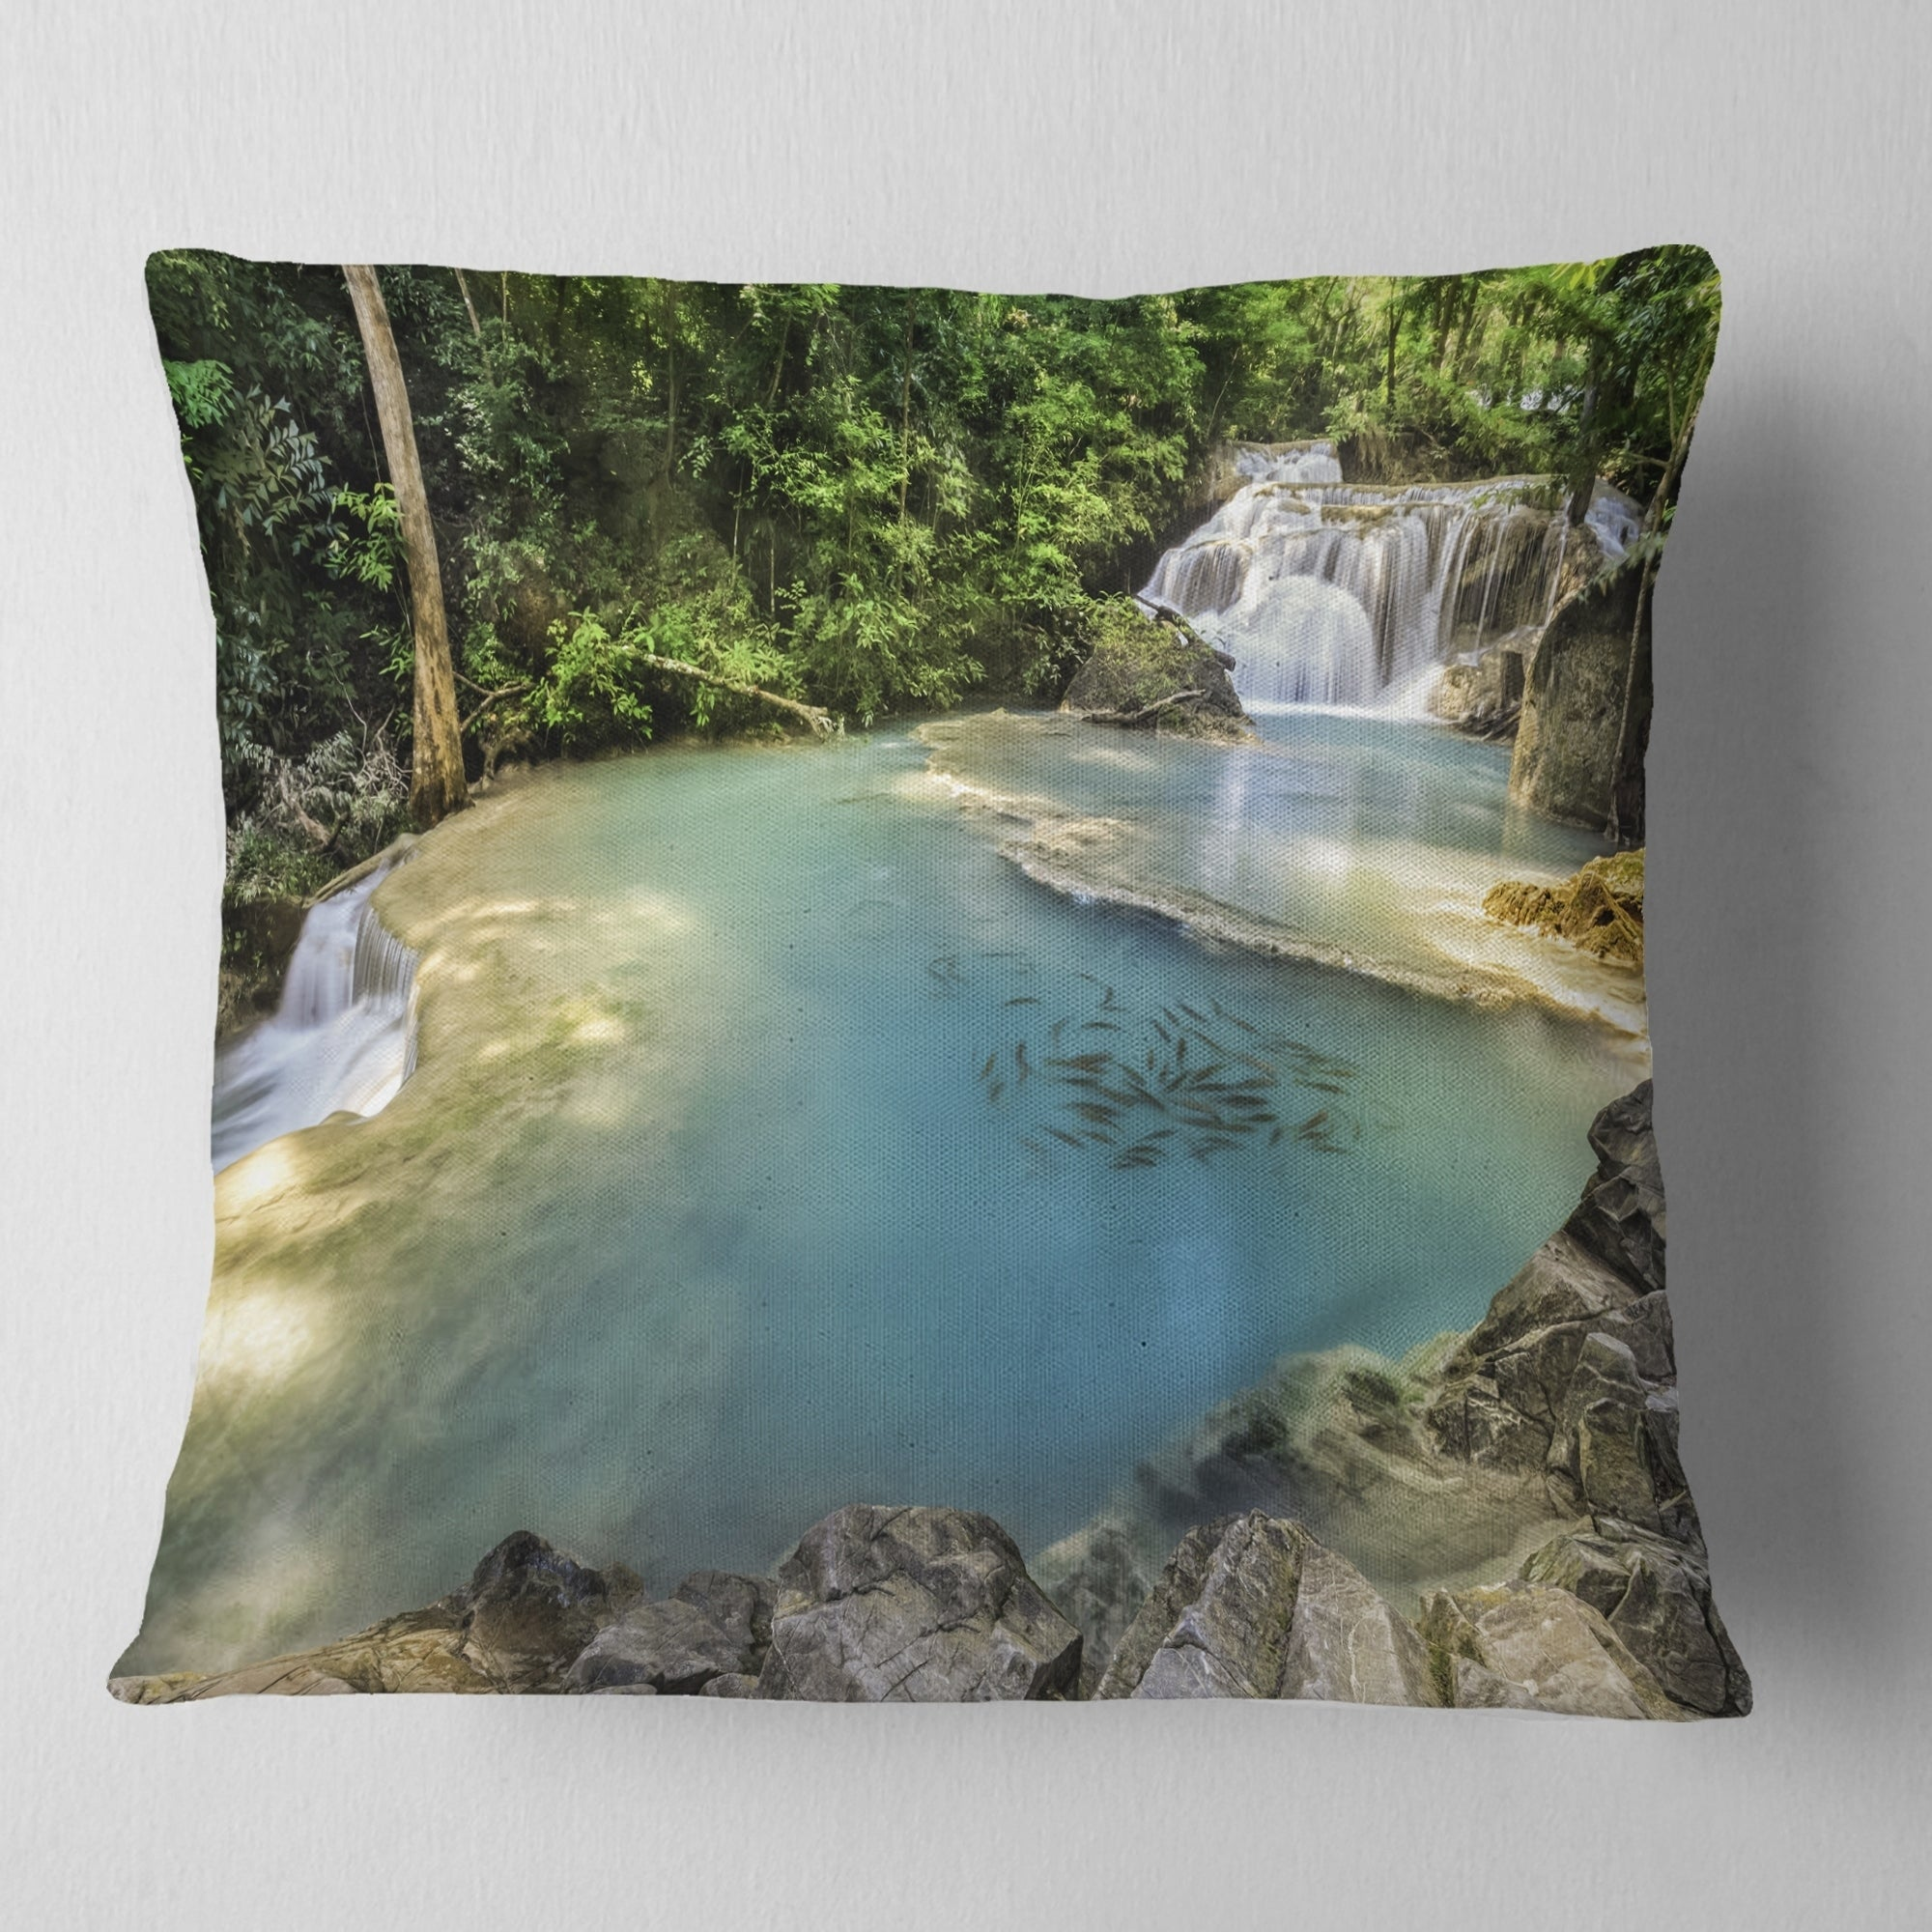 Designart Erawan Waterfall Top View Photography Throw Pillow On Sale Overstock 20947606